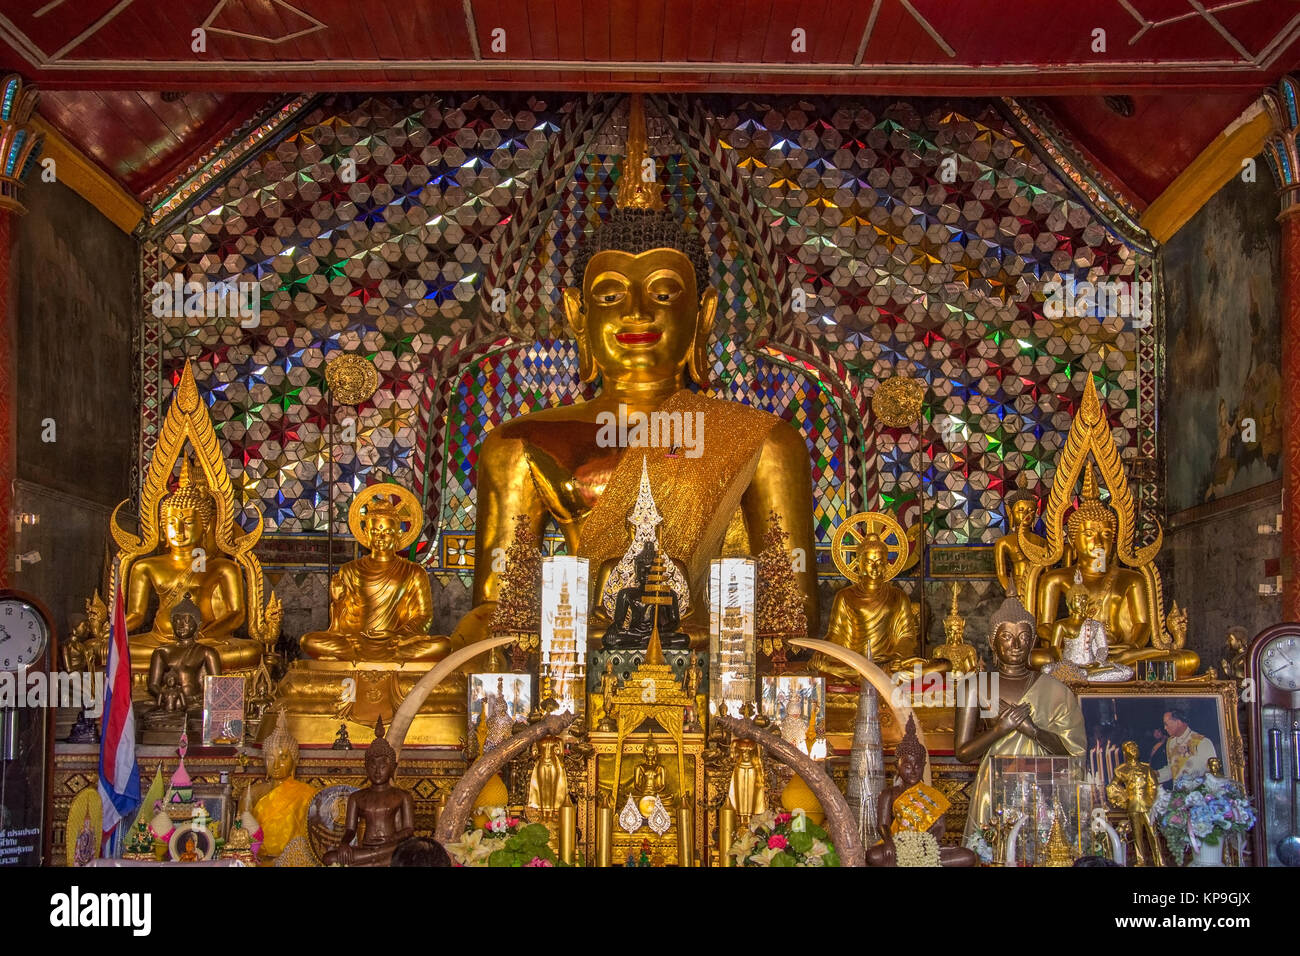 Buddha Images in the Doi Suthep Buddhist Temple near Chiang Mai in northern Thailand. - Stock Image